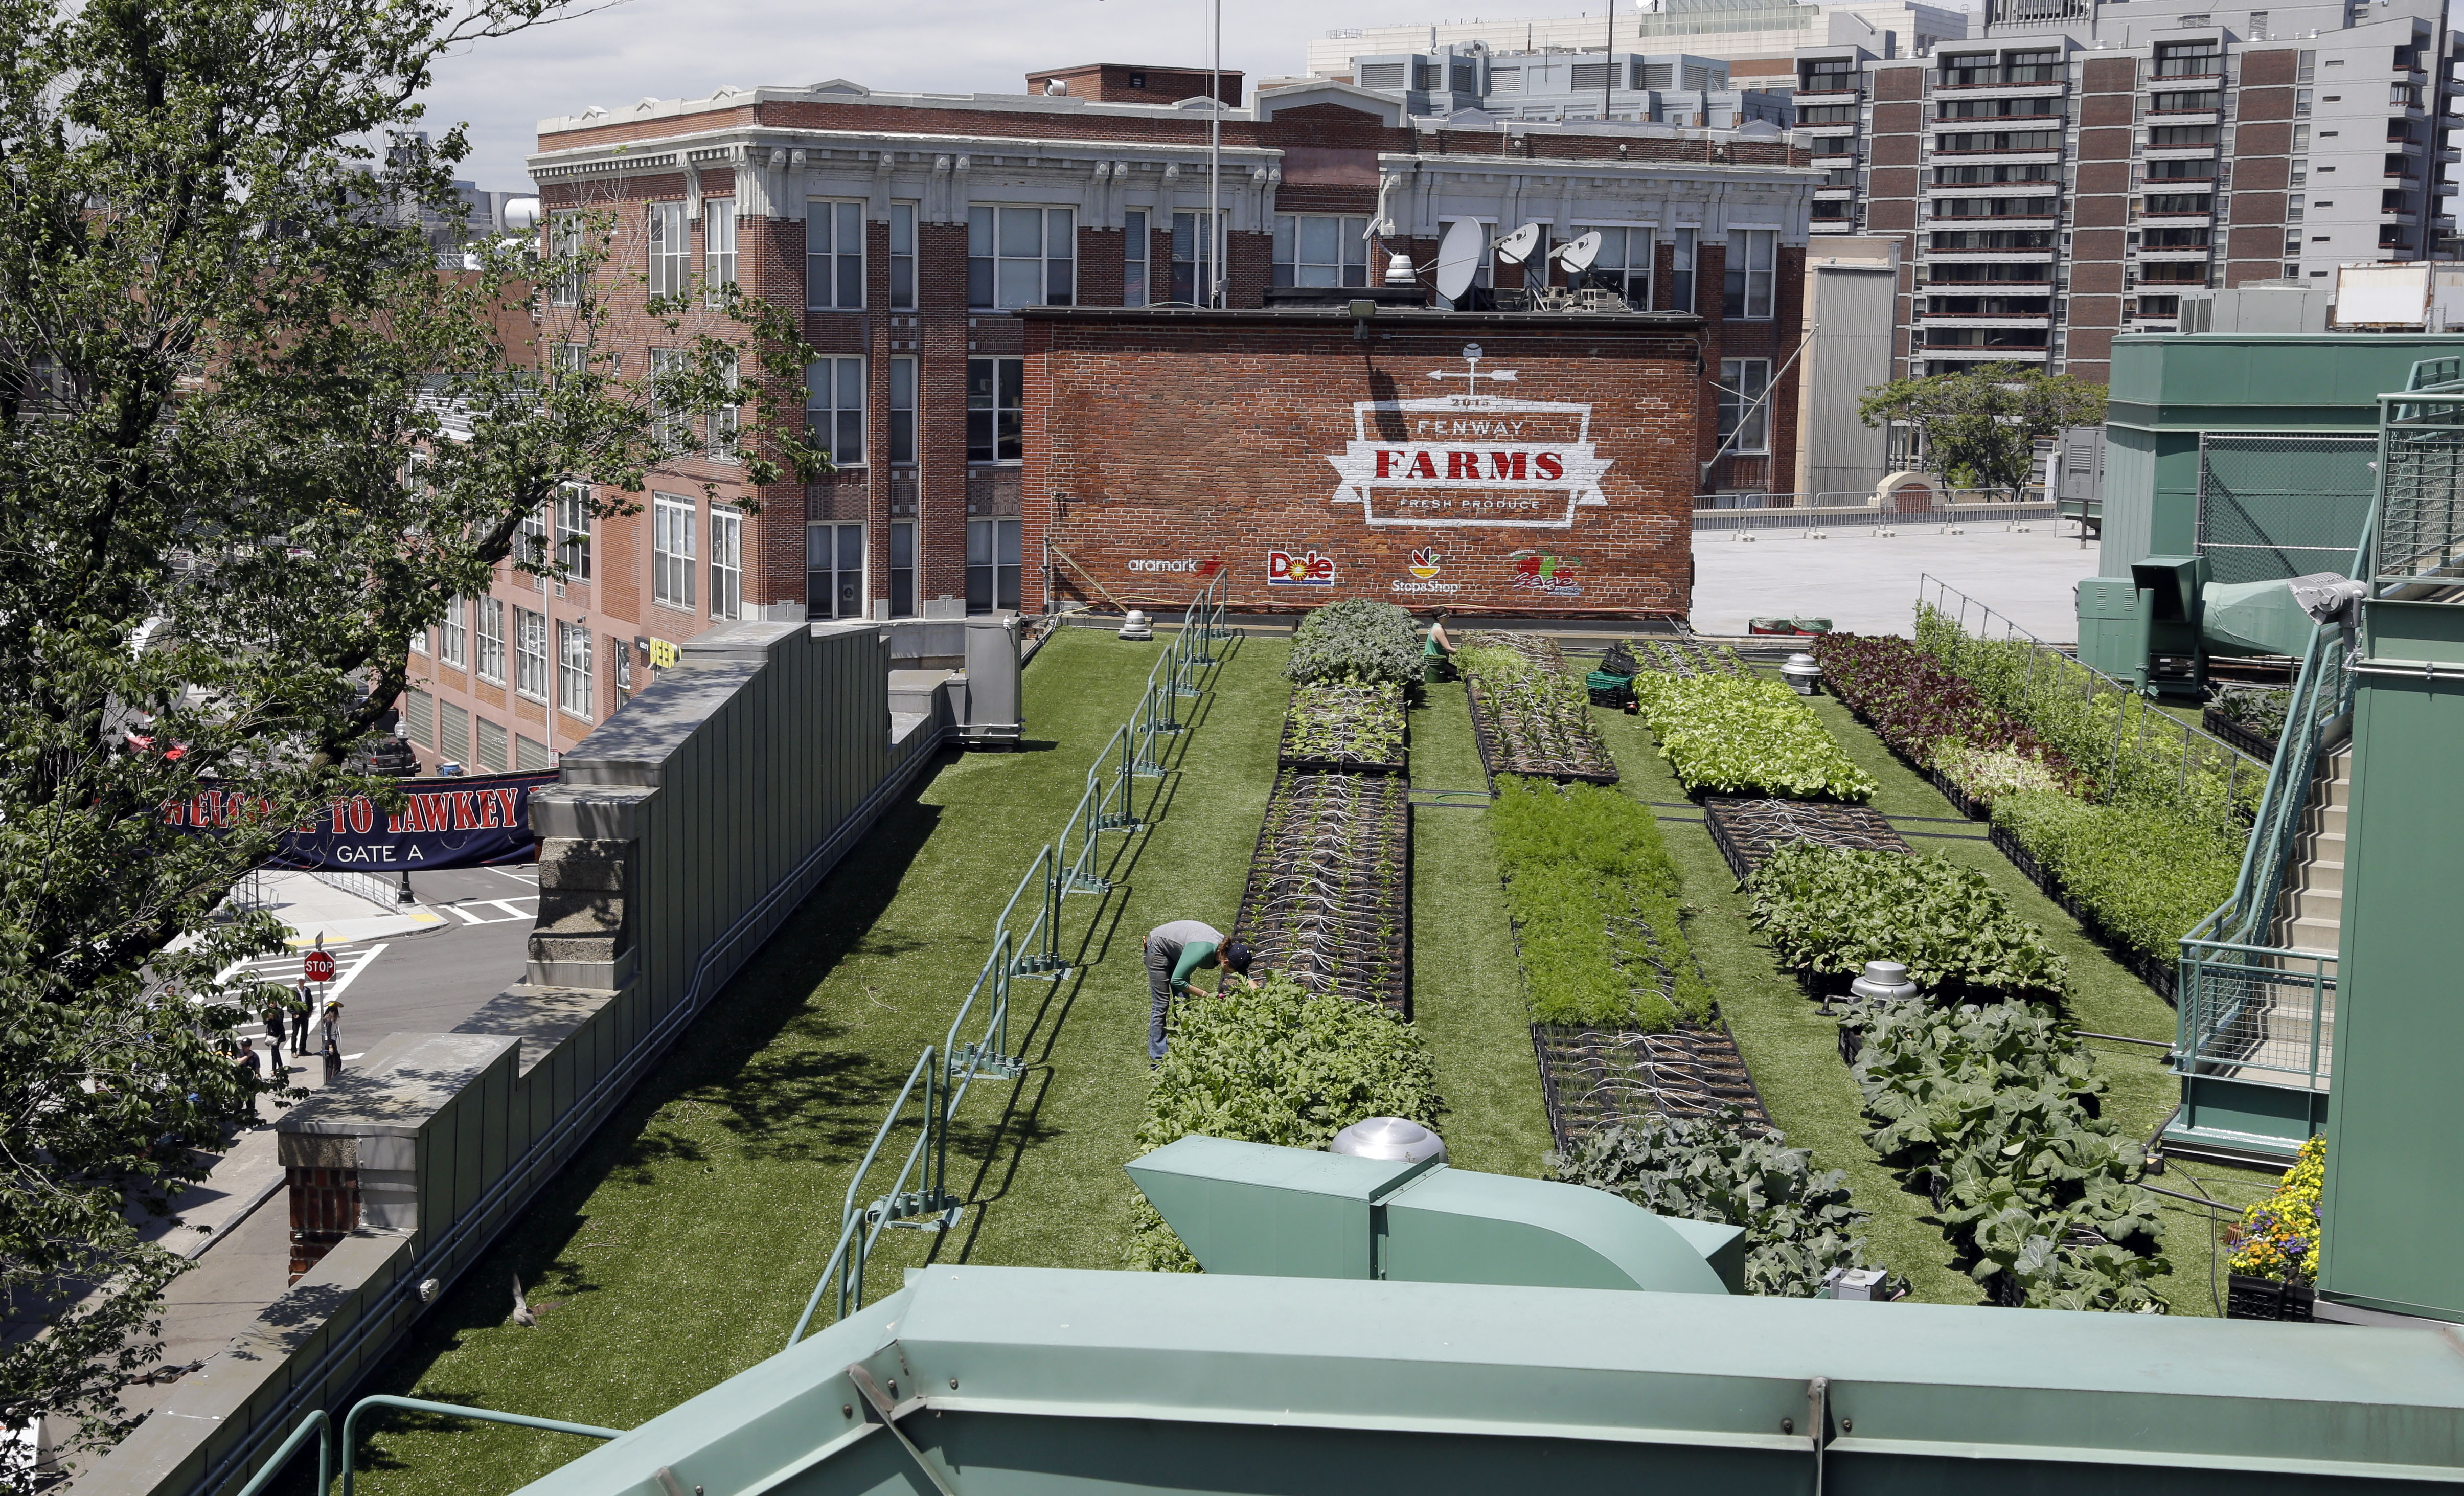 In this photo taken June 4, 2015, workers cultivate produce at a rooftop garden on the third-base side of Fenway Park in Boston. Produce grown in the 5,000-square-foot garden is used in food and cocktails sold at the concessions, at nearby restaurants and